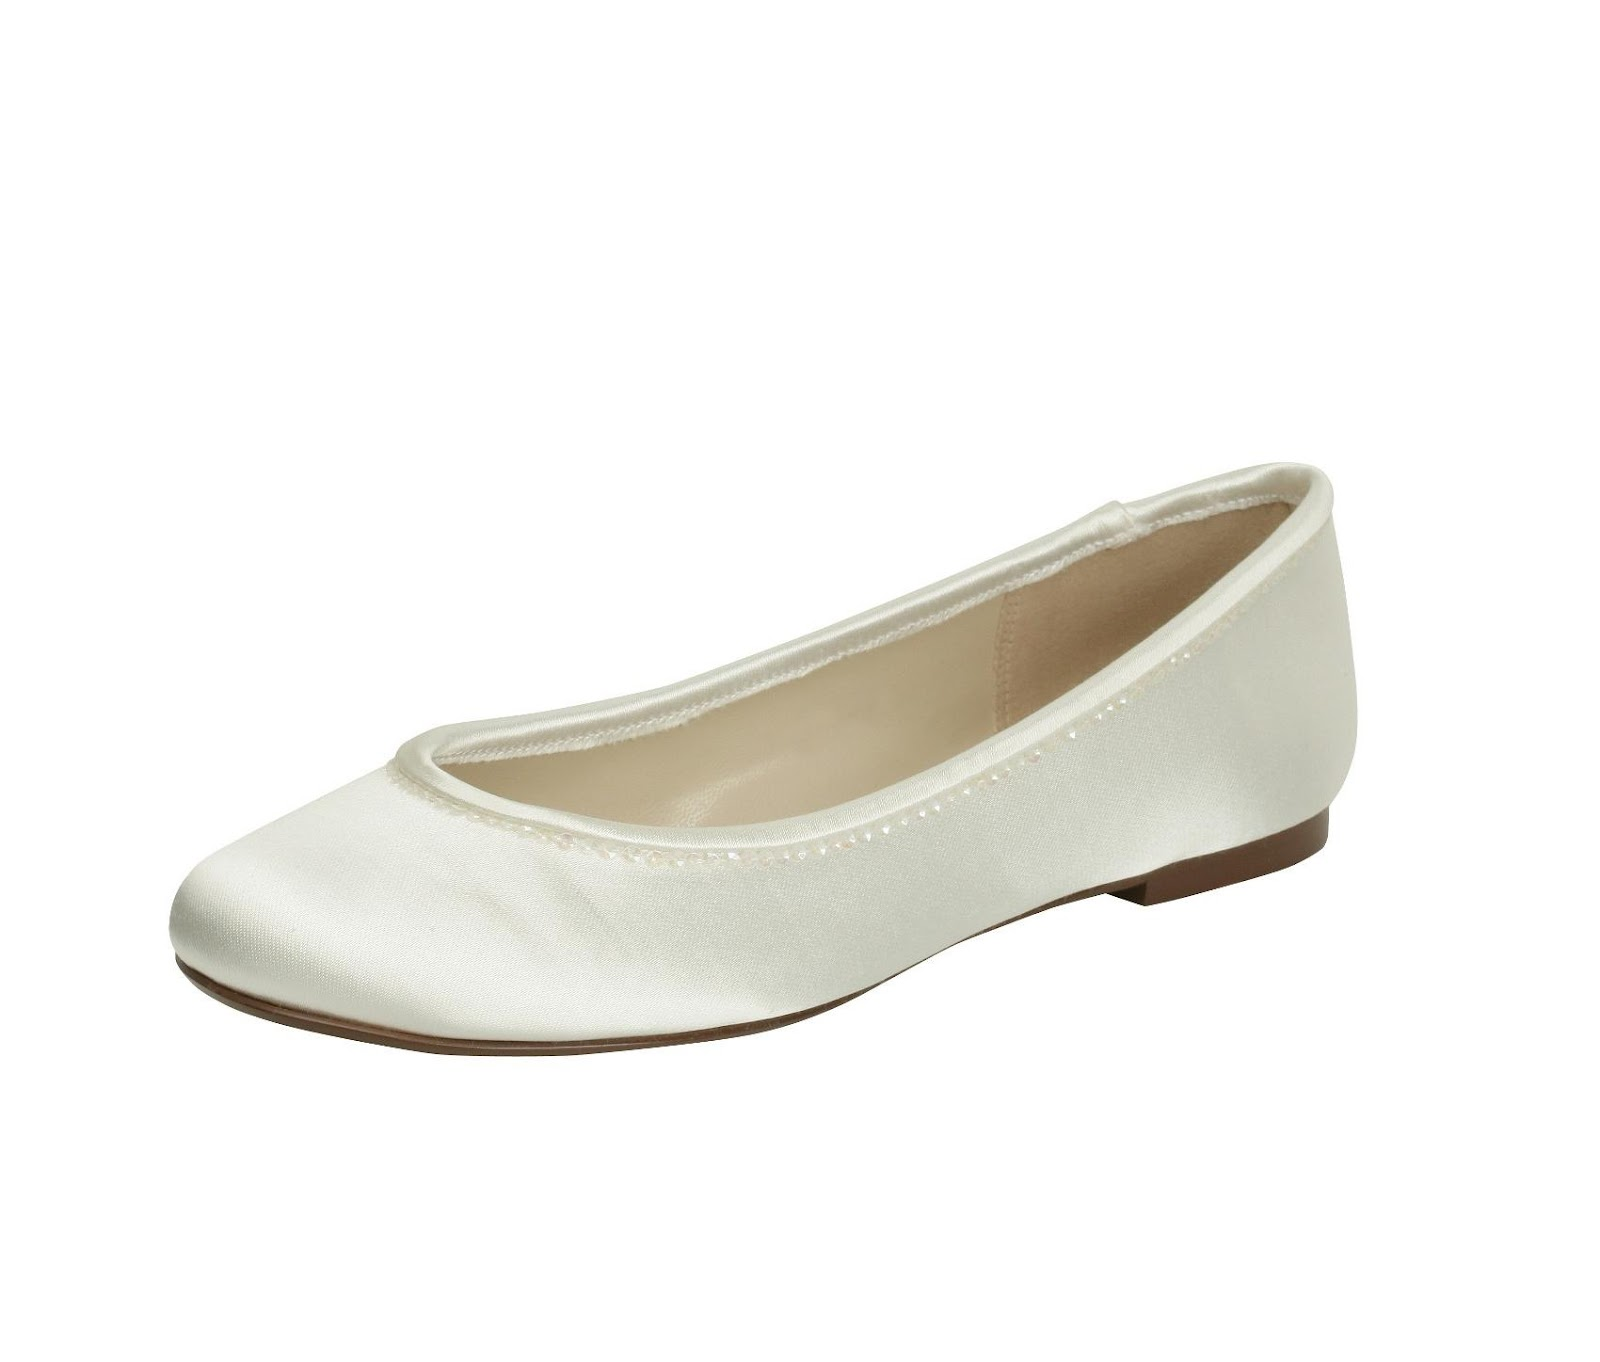 Paradox Pink Cutie Ivory Wedding Shoes. Hover over image to zoom